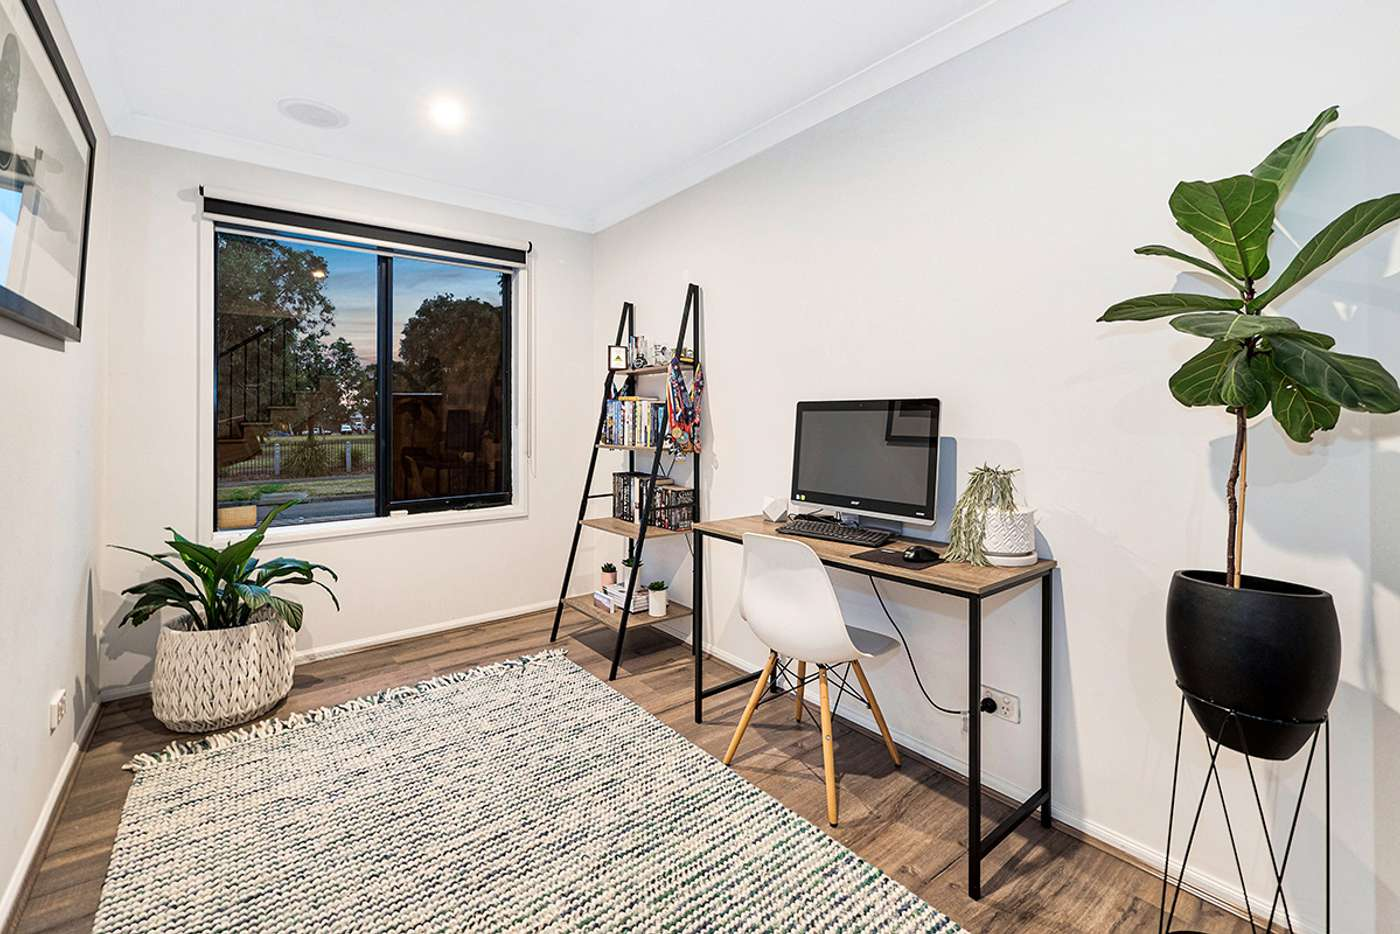 Fifth view of Homely house listing, 31 Melington Drive, Lyndhurst VIC 3975